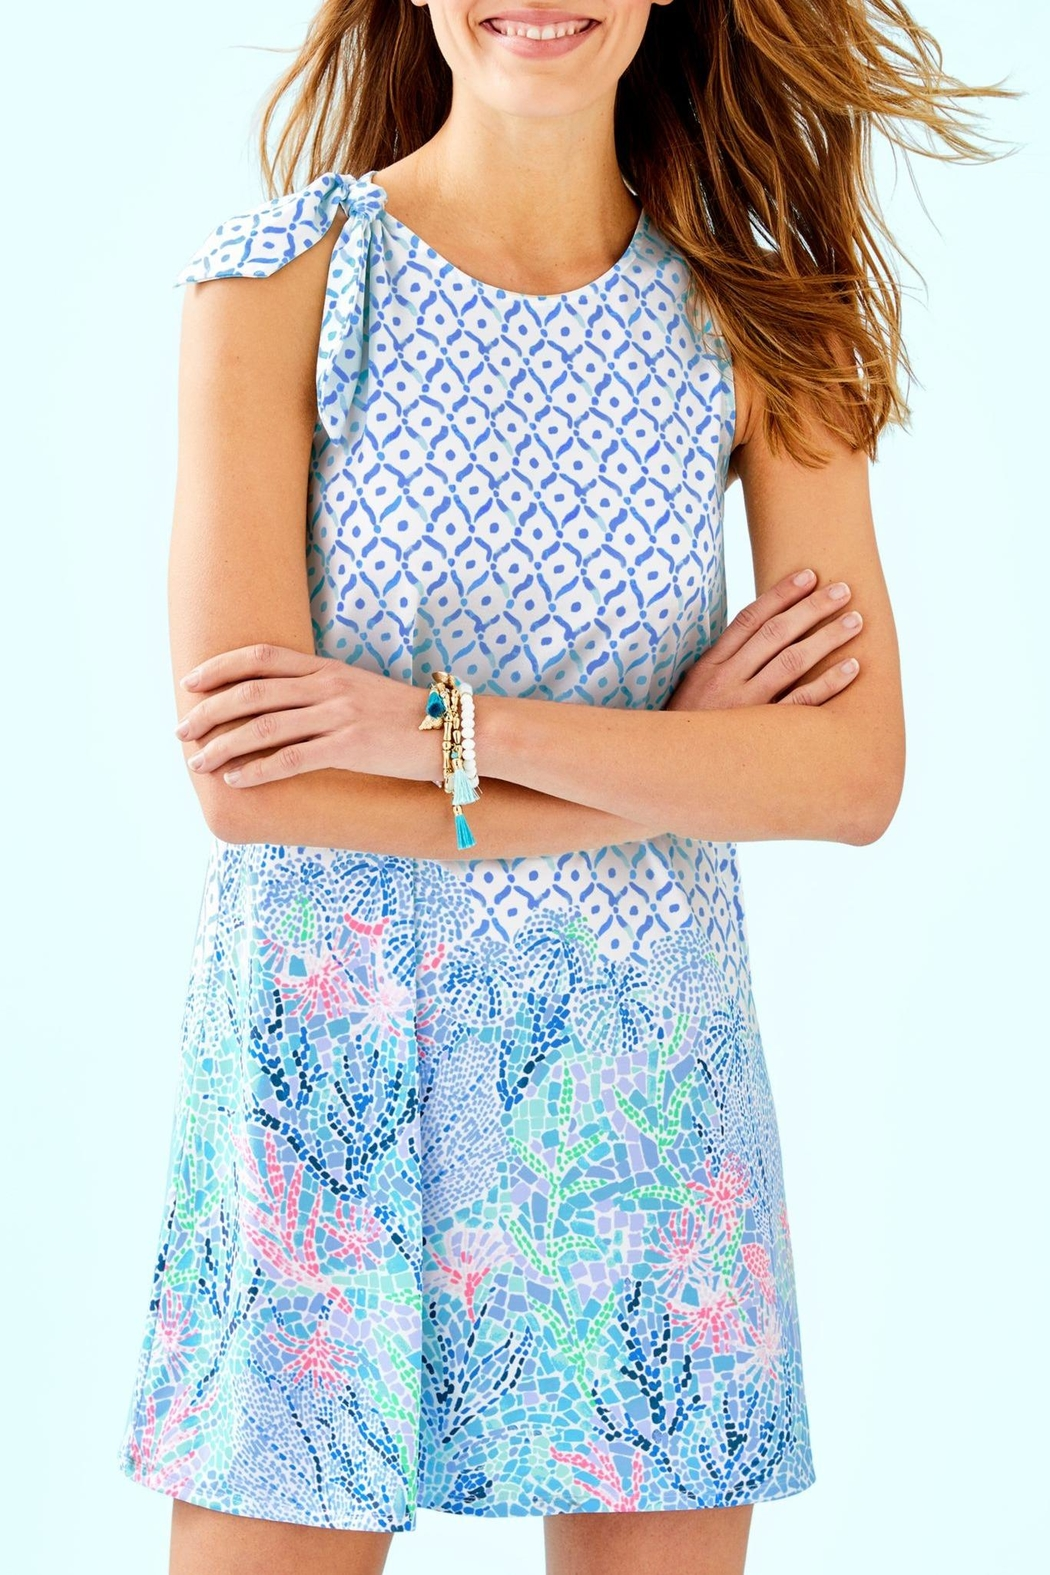 b11fb24be8fa51 Lilly Pulitzer Luella Dress from Sandestin Golf and Beach Resort by ...